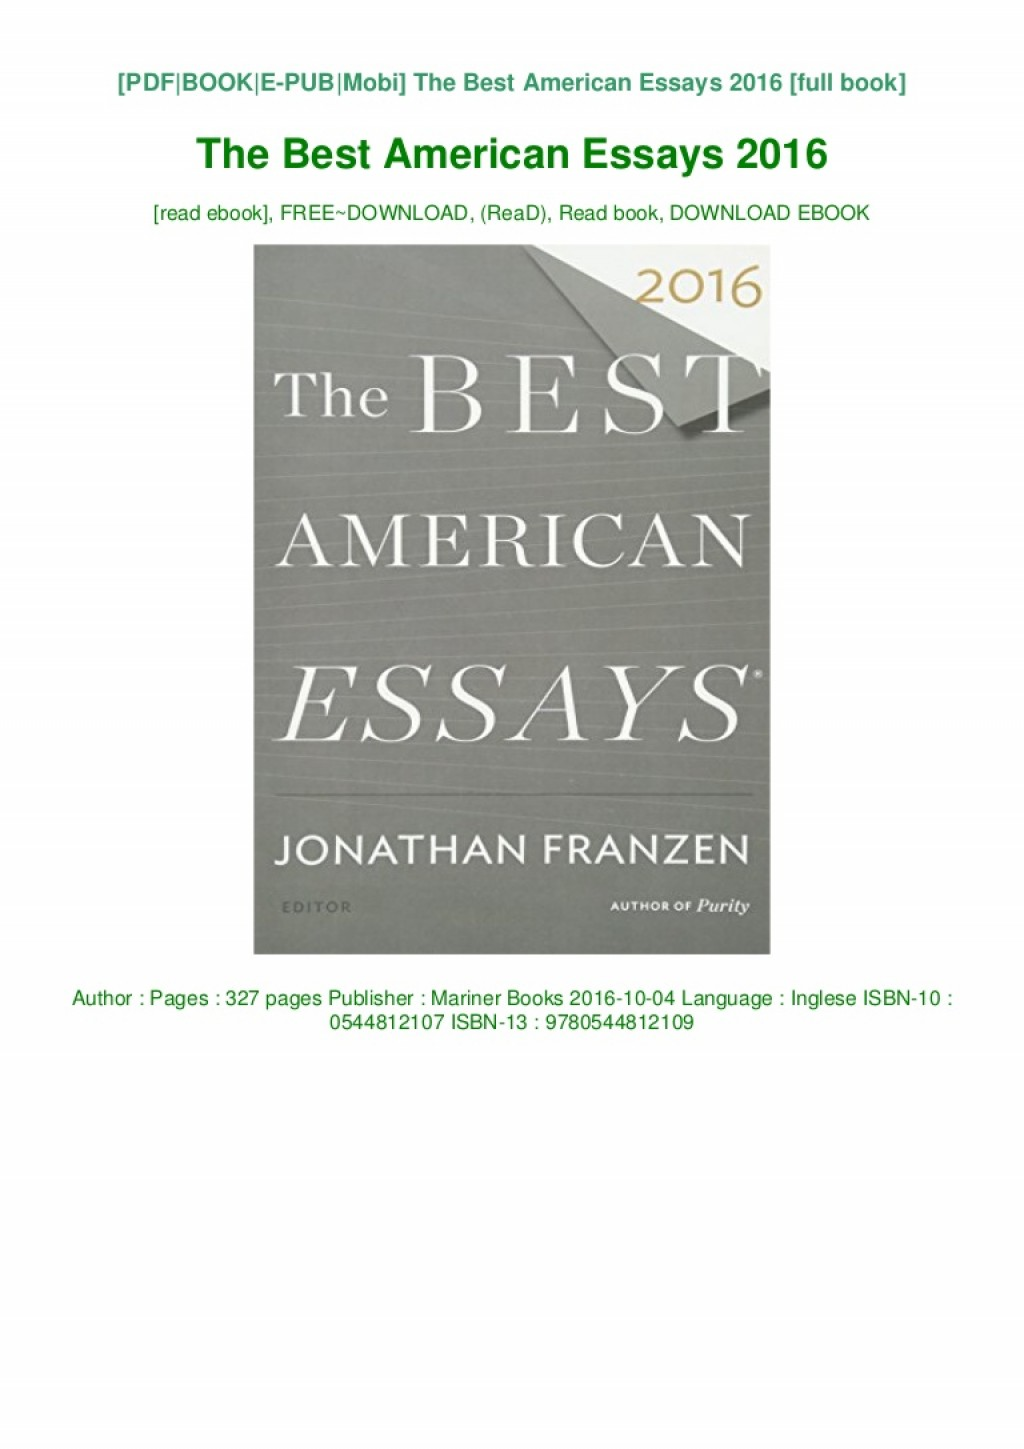 004 The Best American Essays Download Pdf Epub Audiobook Ebook Thumbnail Essay Phenomenal 2016 Sparknotes Large